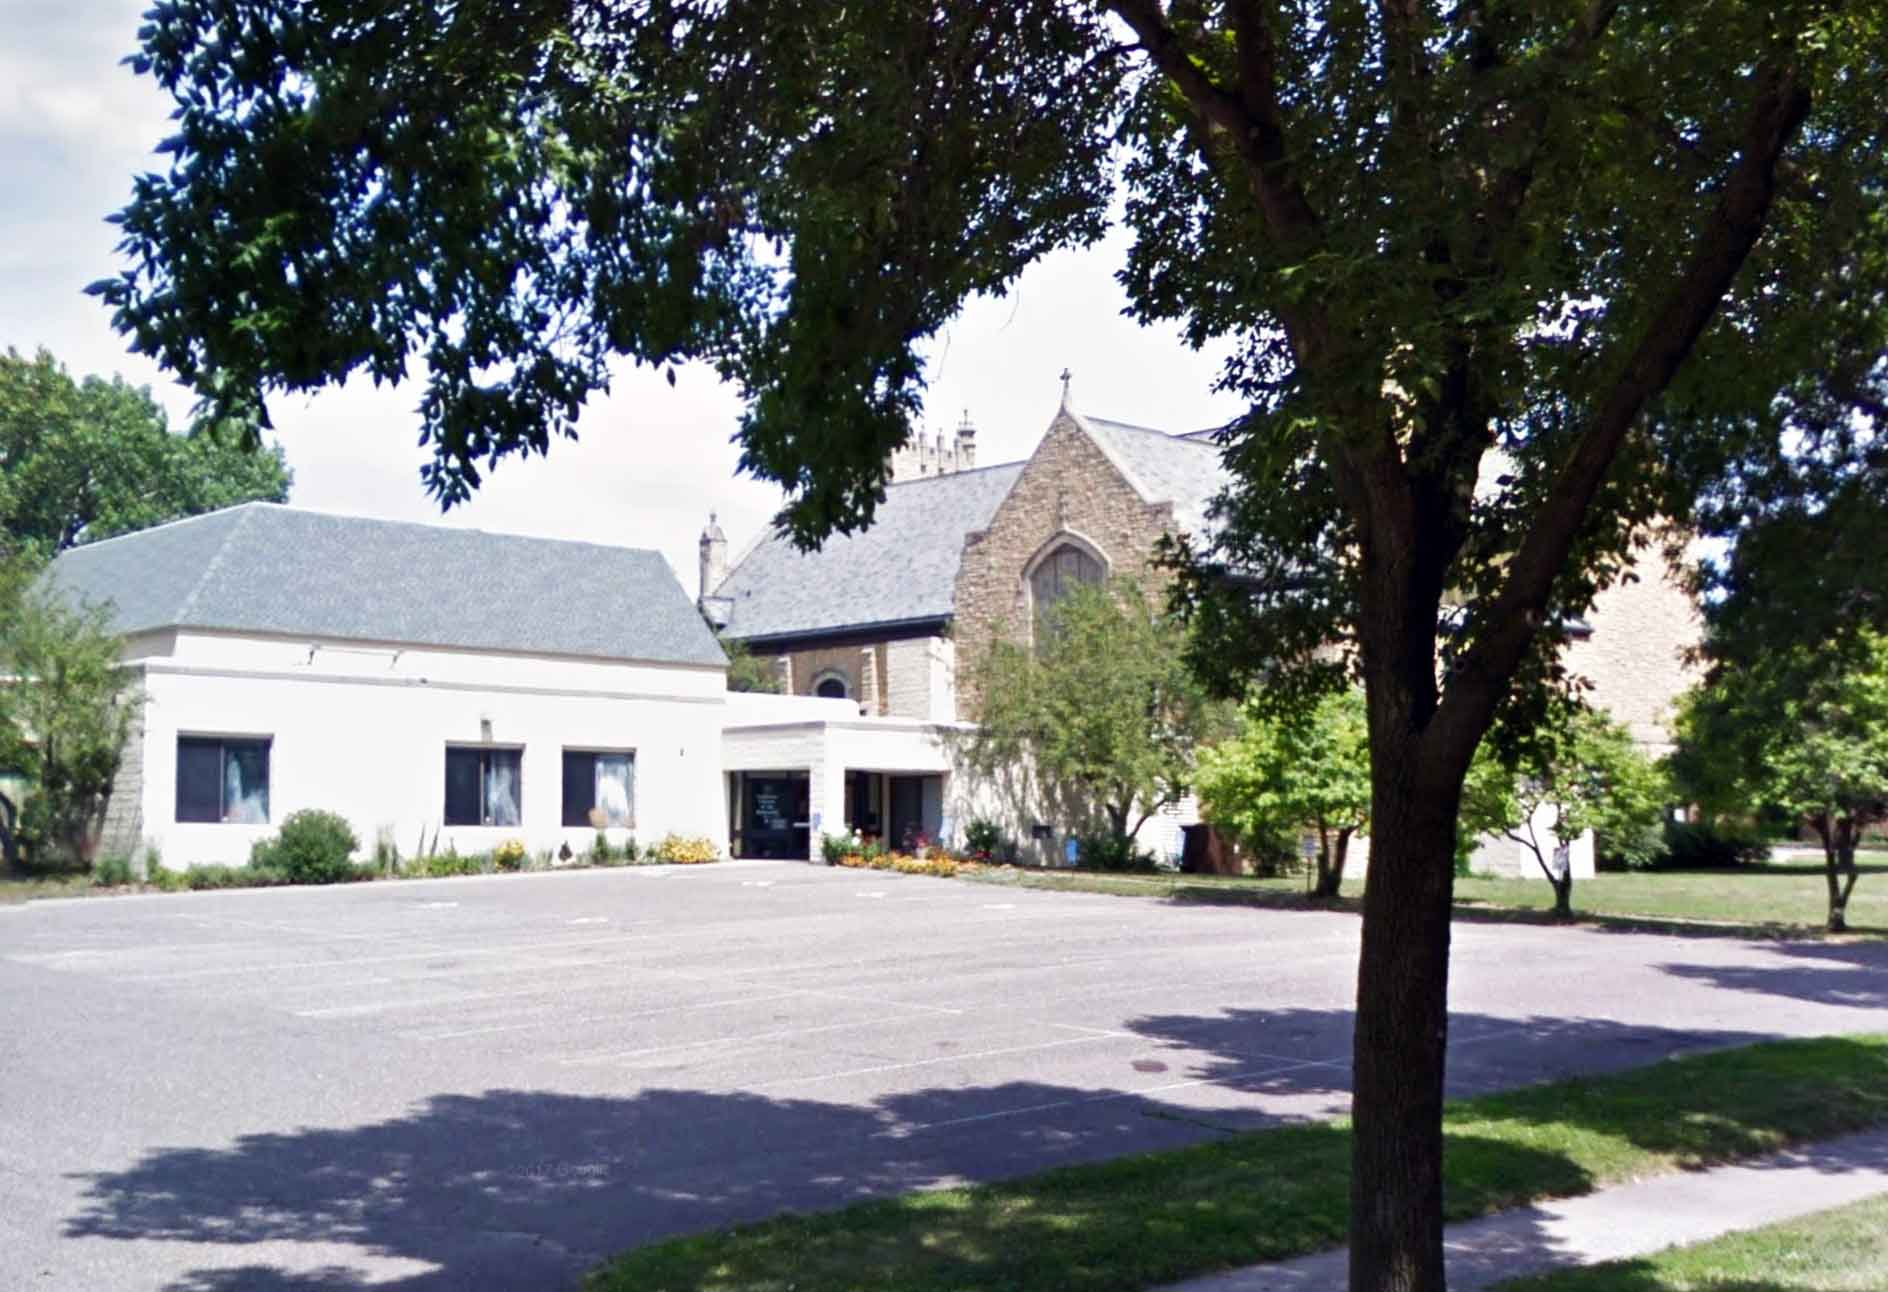 Urban Partnership and Community Development Location at 285 Dale Ave in St. Paul Minnesota